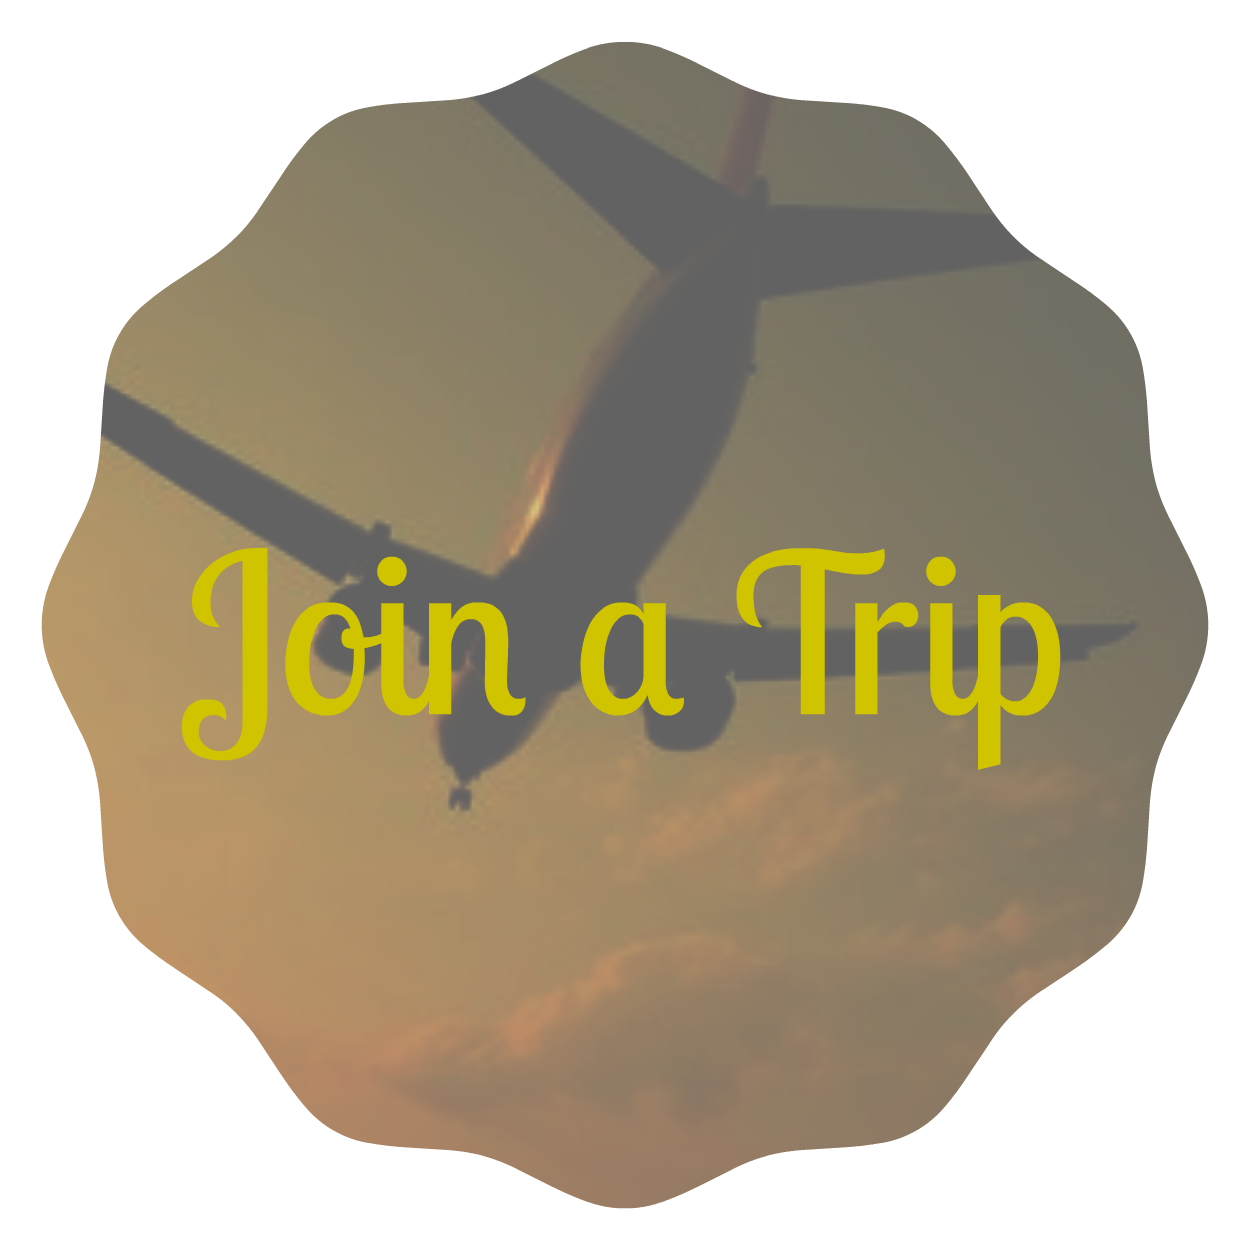 Join a trip circle.png